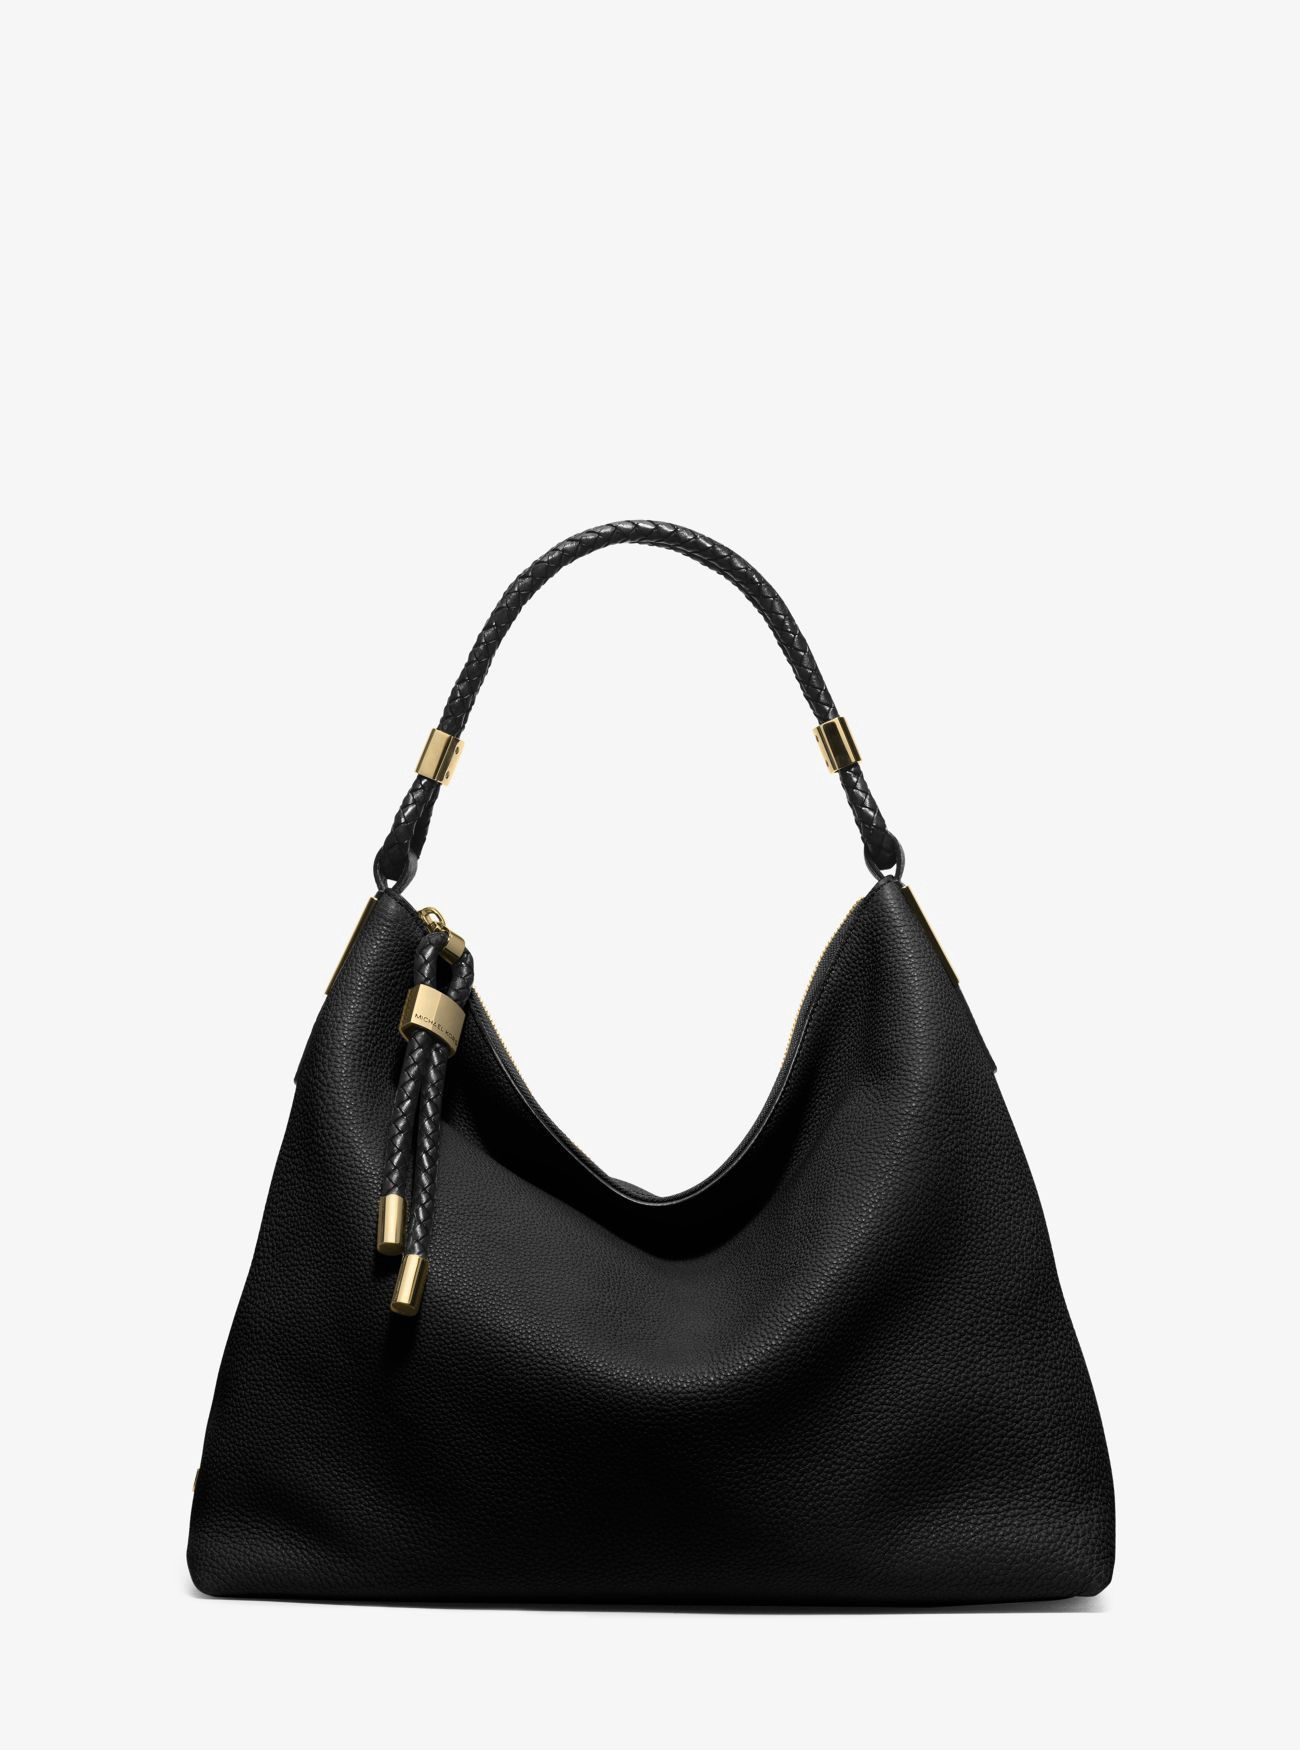 5cfd46ba77c0 MICHAEL KORS Skorpios Large Leather Shoulder Bag.  michaelkors  bags  shoulder  bags  hand bags  lining  leather  cotton